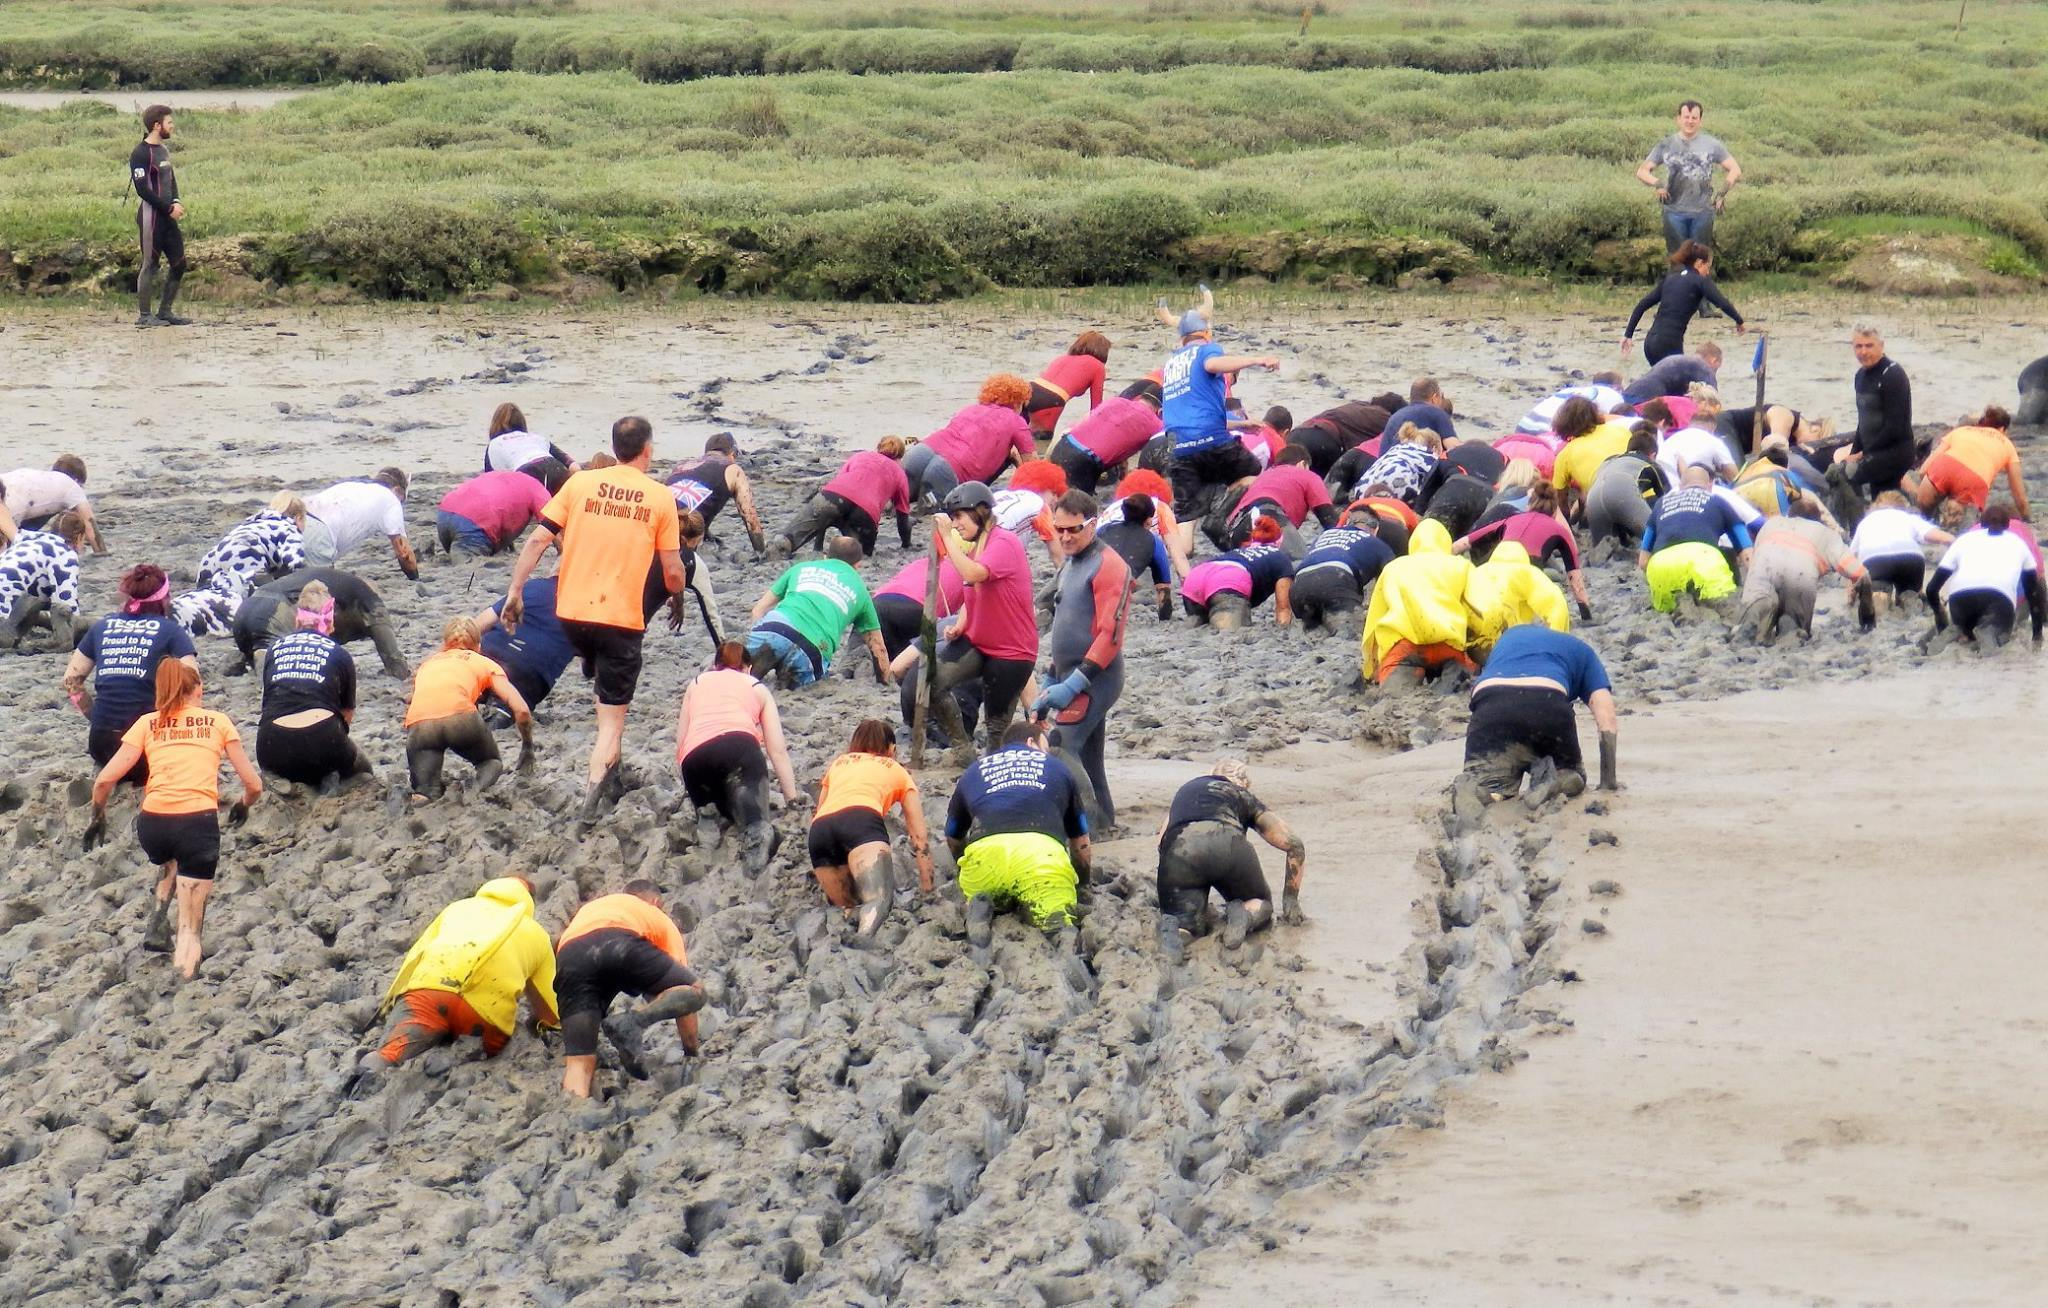 Another year: In Maldon District Council's budget, a number of annual events have been maintained including the annual Mud Race